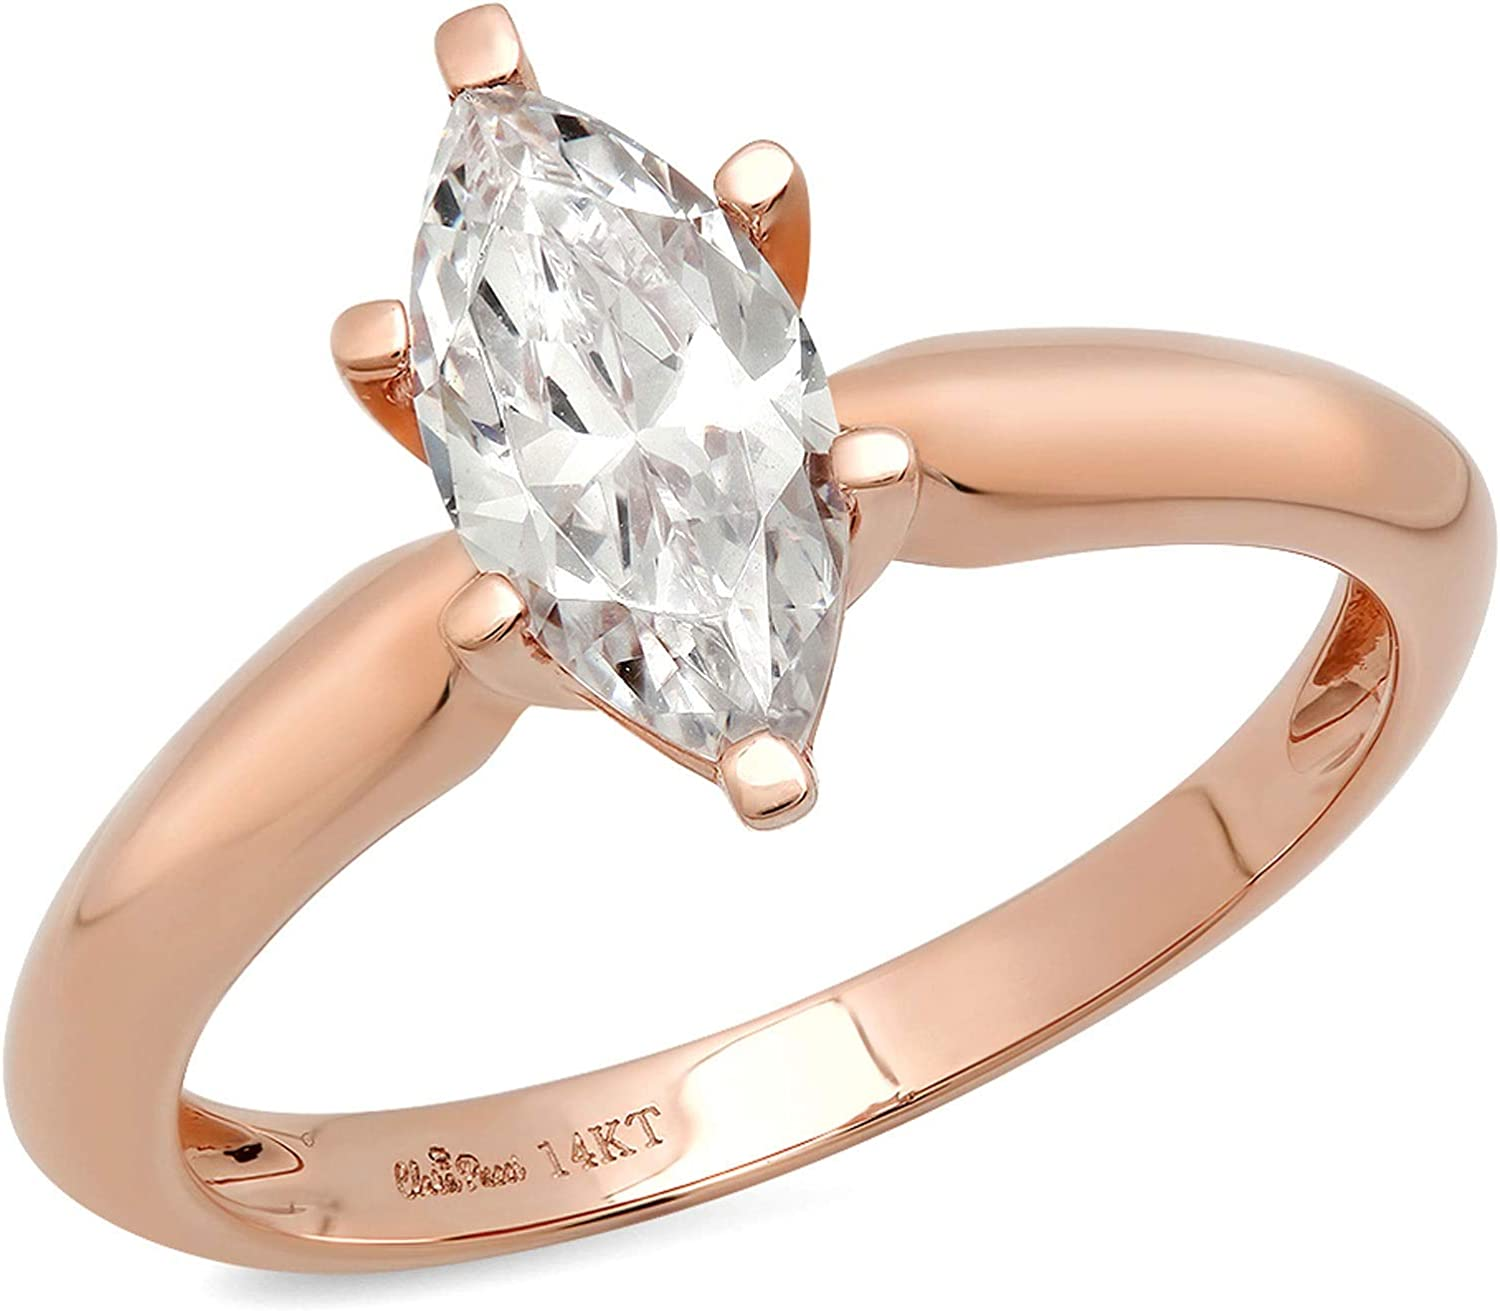 0.9ct Brilliant Marquise Cut Solitaire Stunning Genuine Lab Created White Sapphire Ideal VVS1 D 6-Prong Engagement Wedding Bridal Promise Anniversary Ring Solid 14k Rose Gold for Women